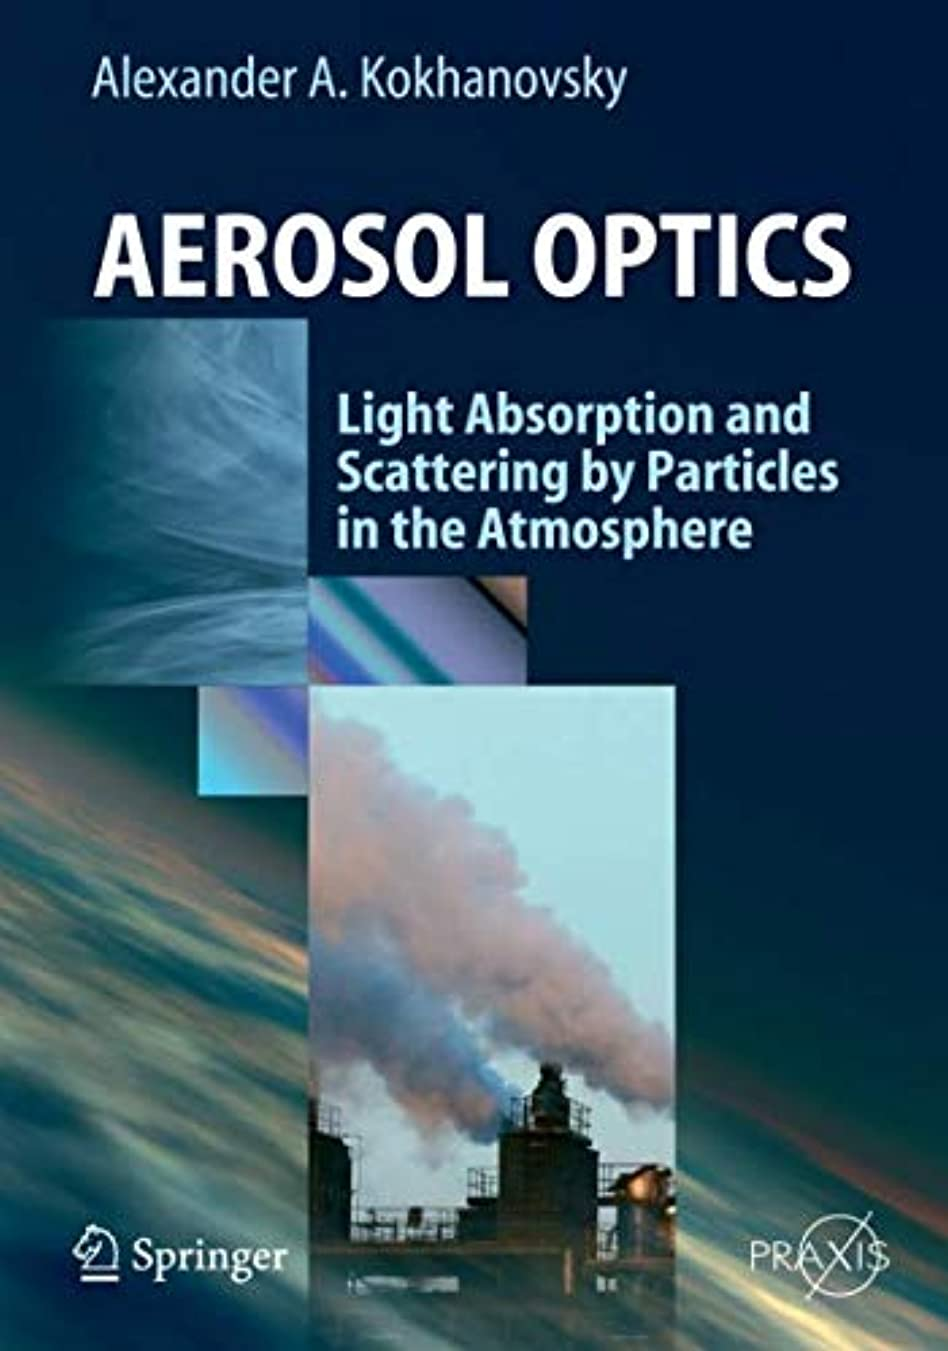 相談する有効ブーストAerosol Optics: Light Absorption and Scattering by Particles in the  Atmosphere (Springer Praxis Books)